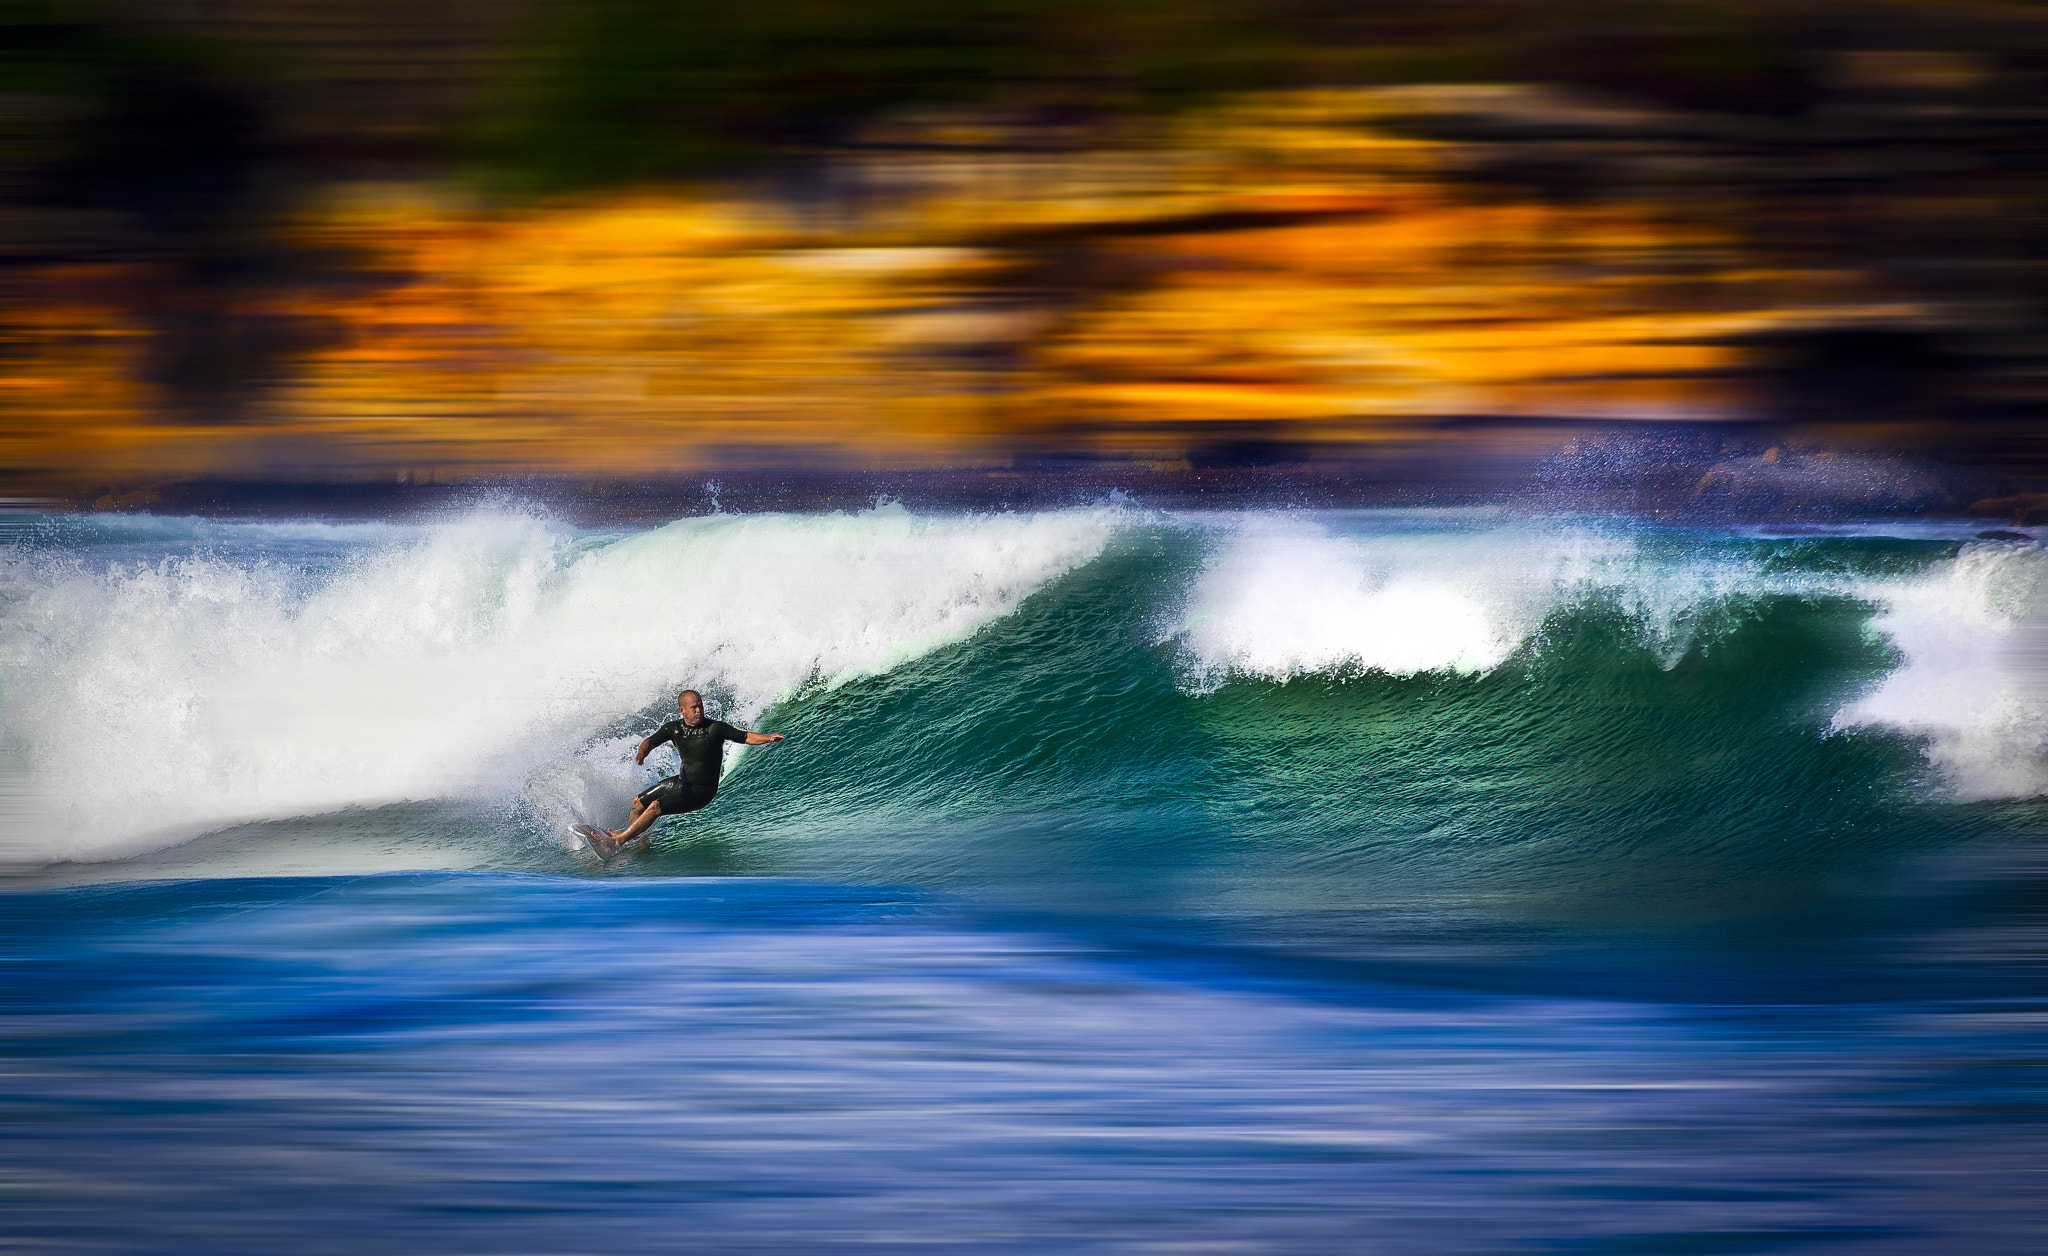 Photograph Cutback... by David Psaila on 500px